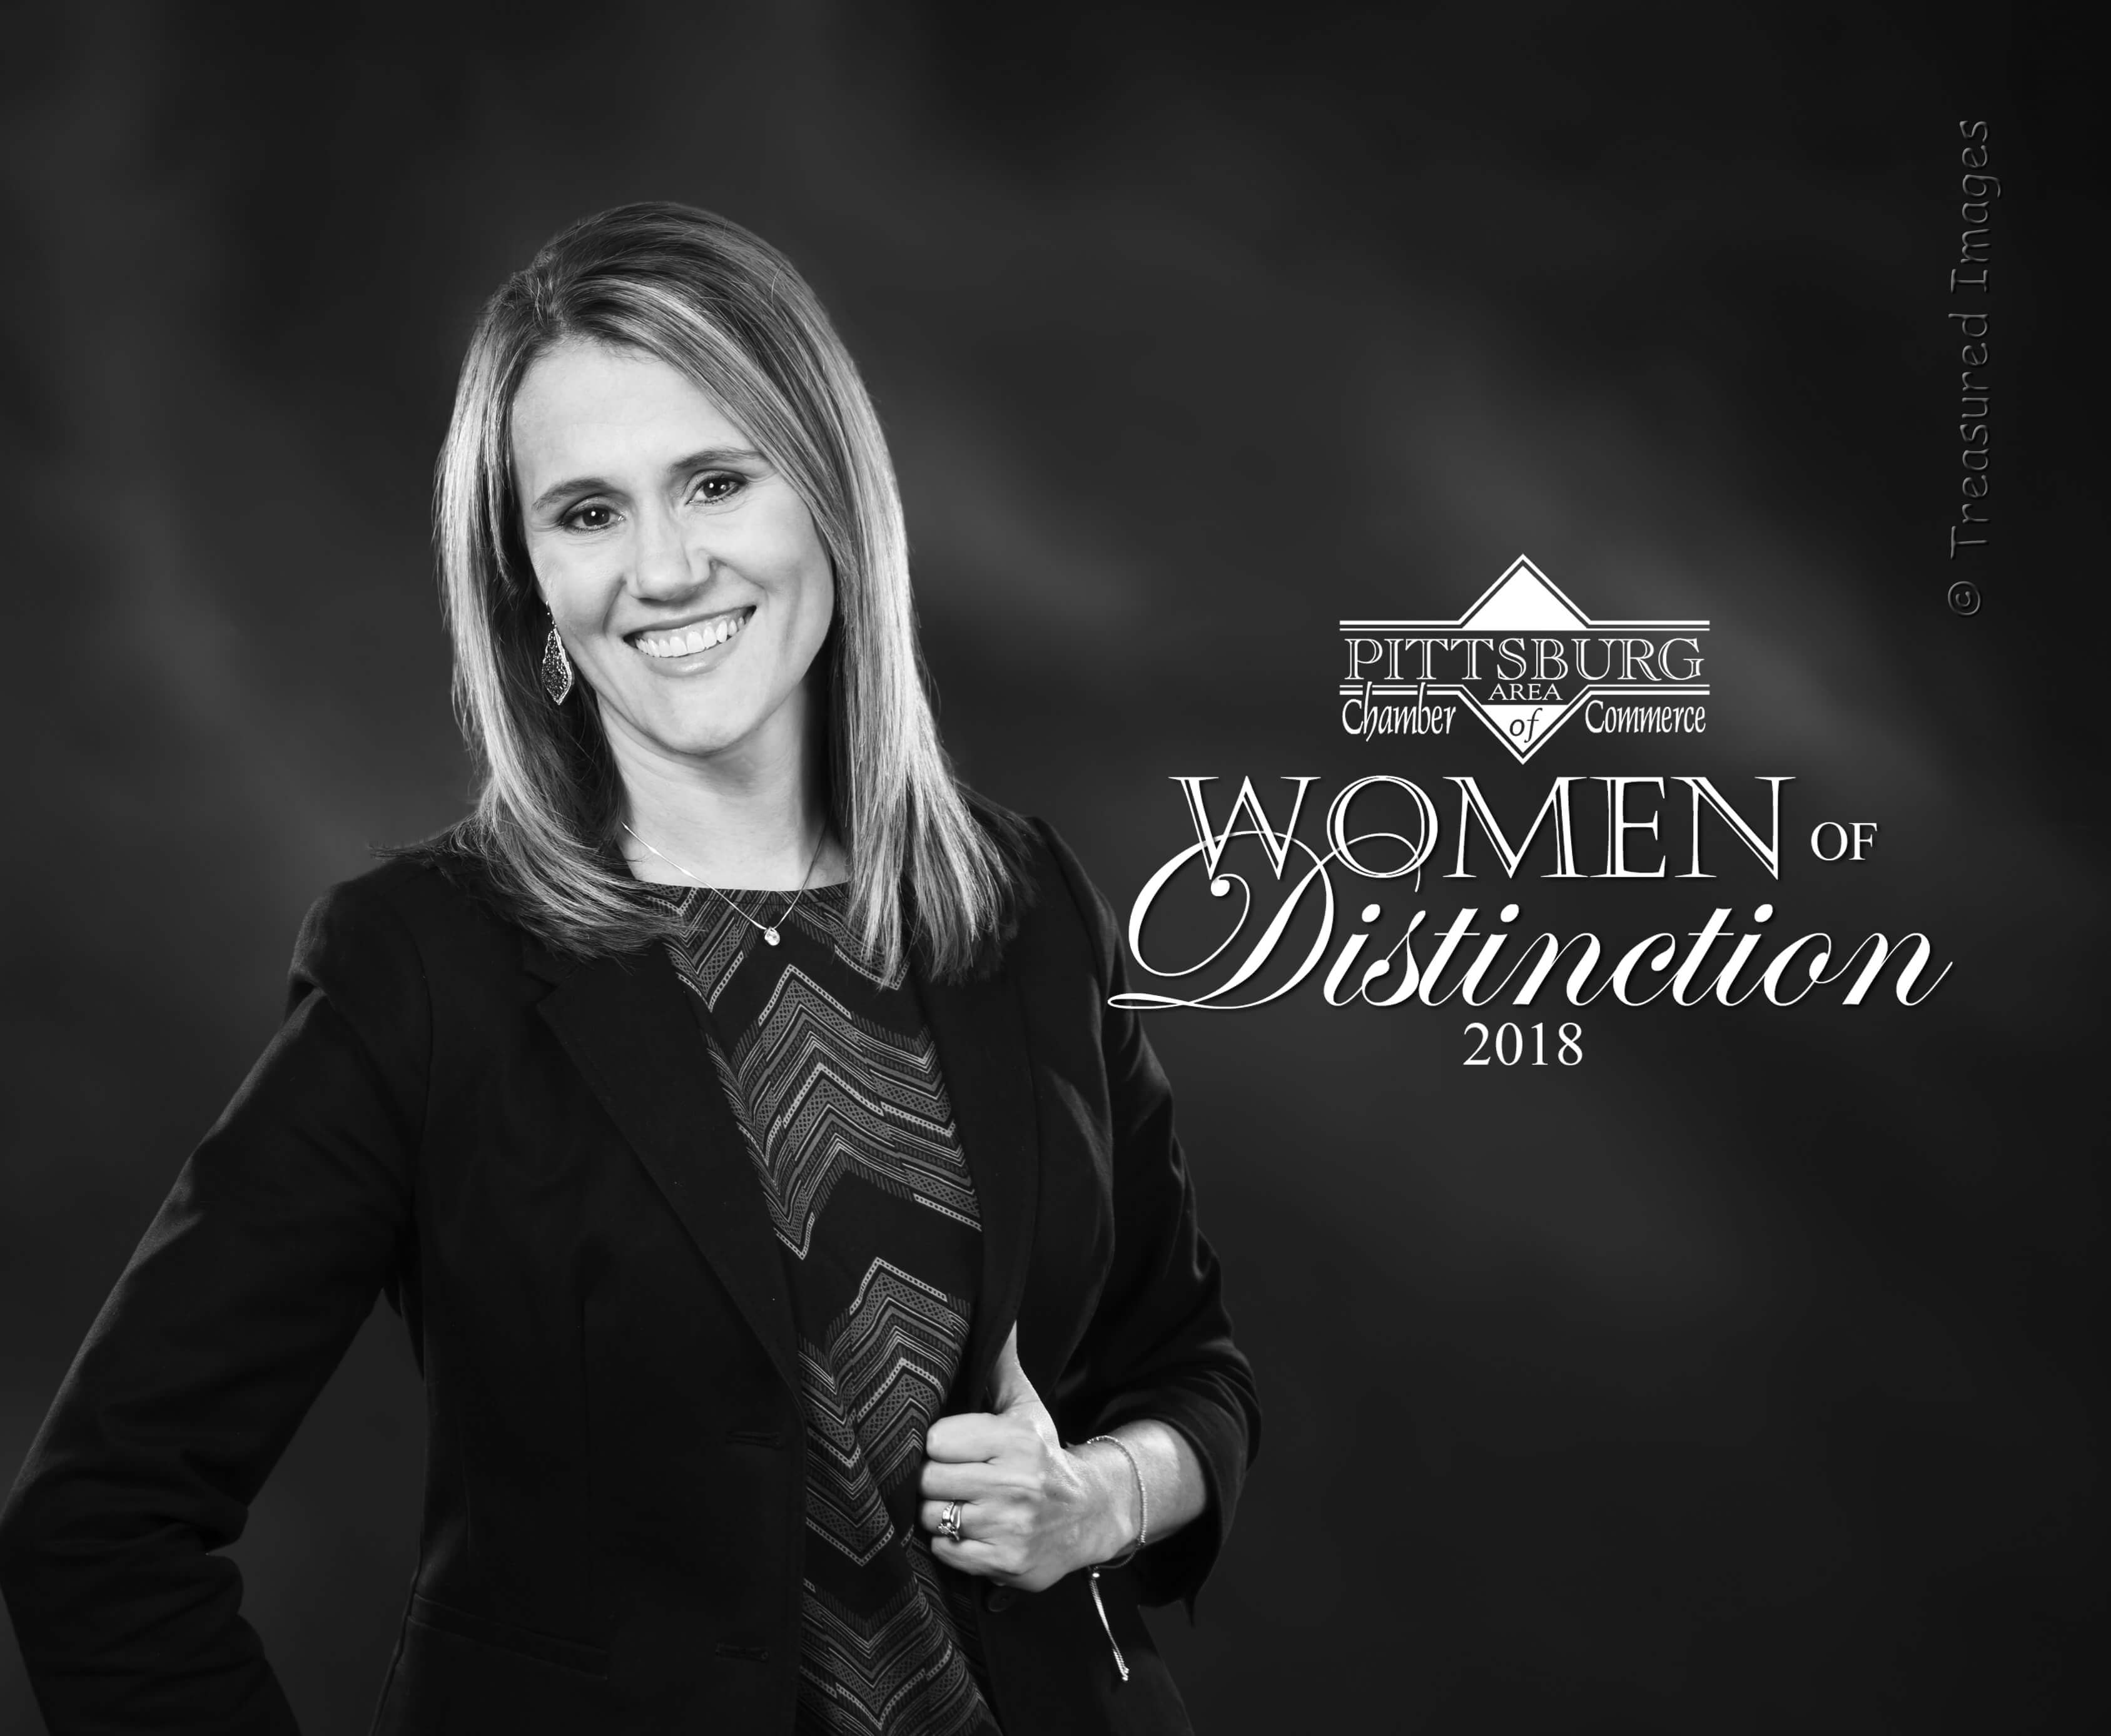 LimeLight Marketing President Awarded 2018 Women of Distinction